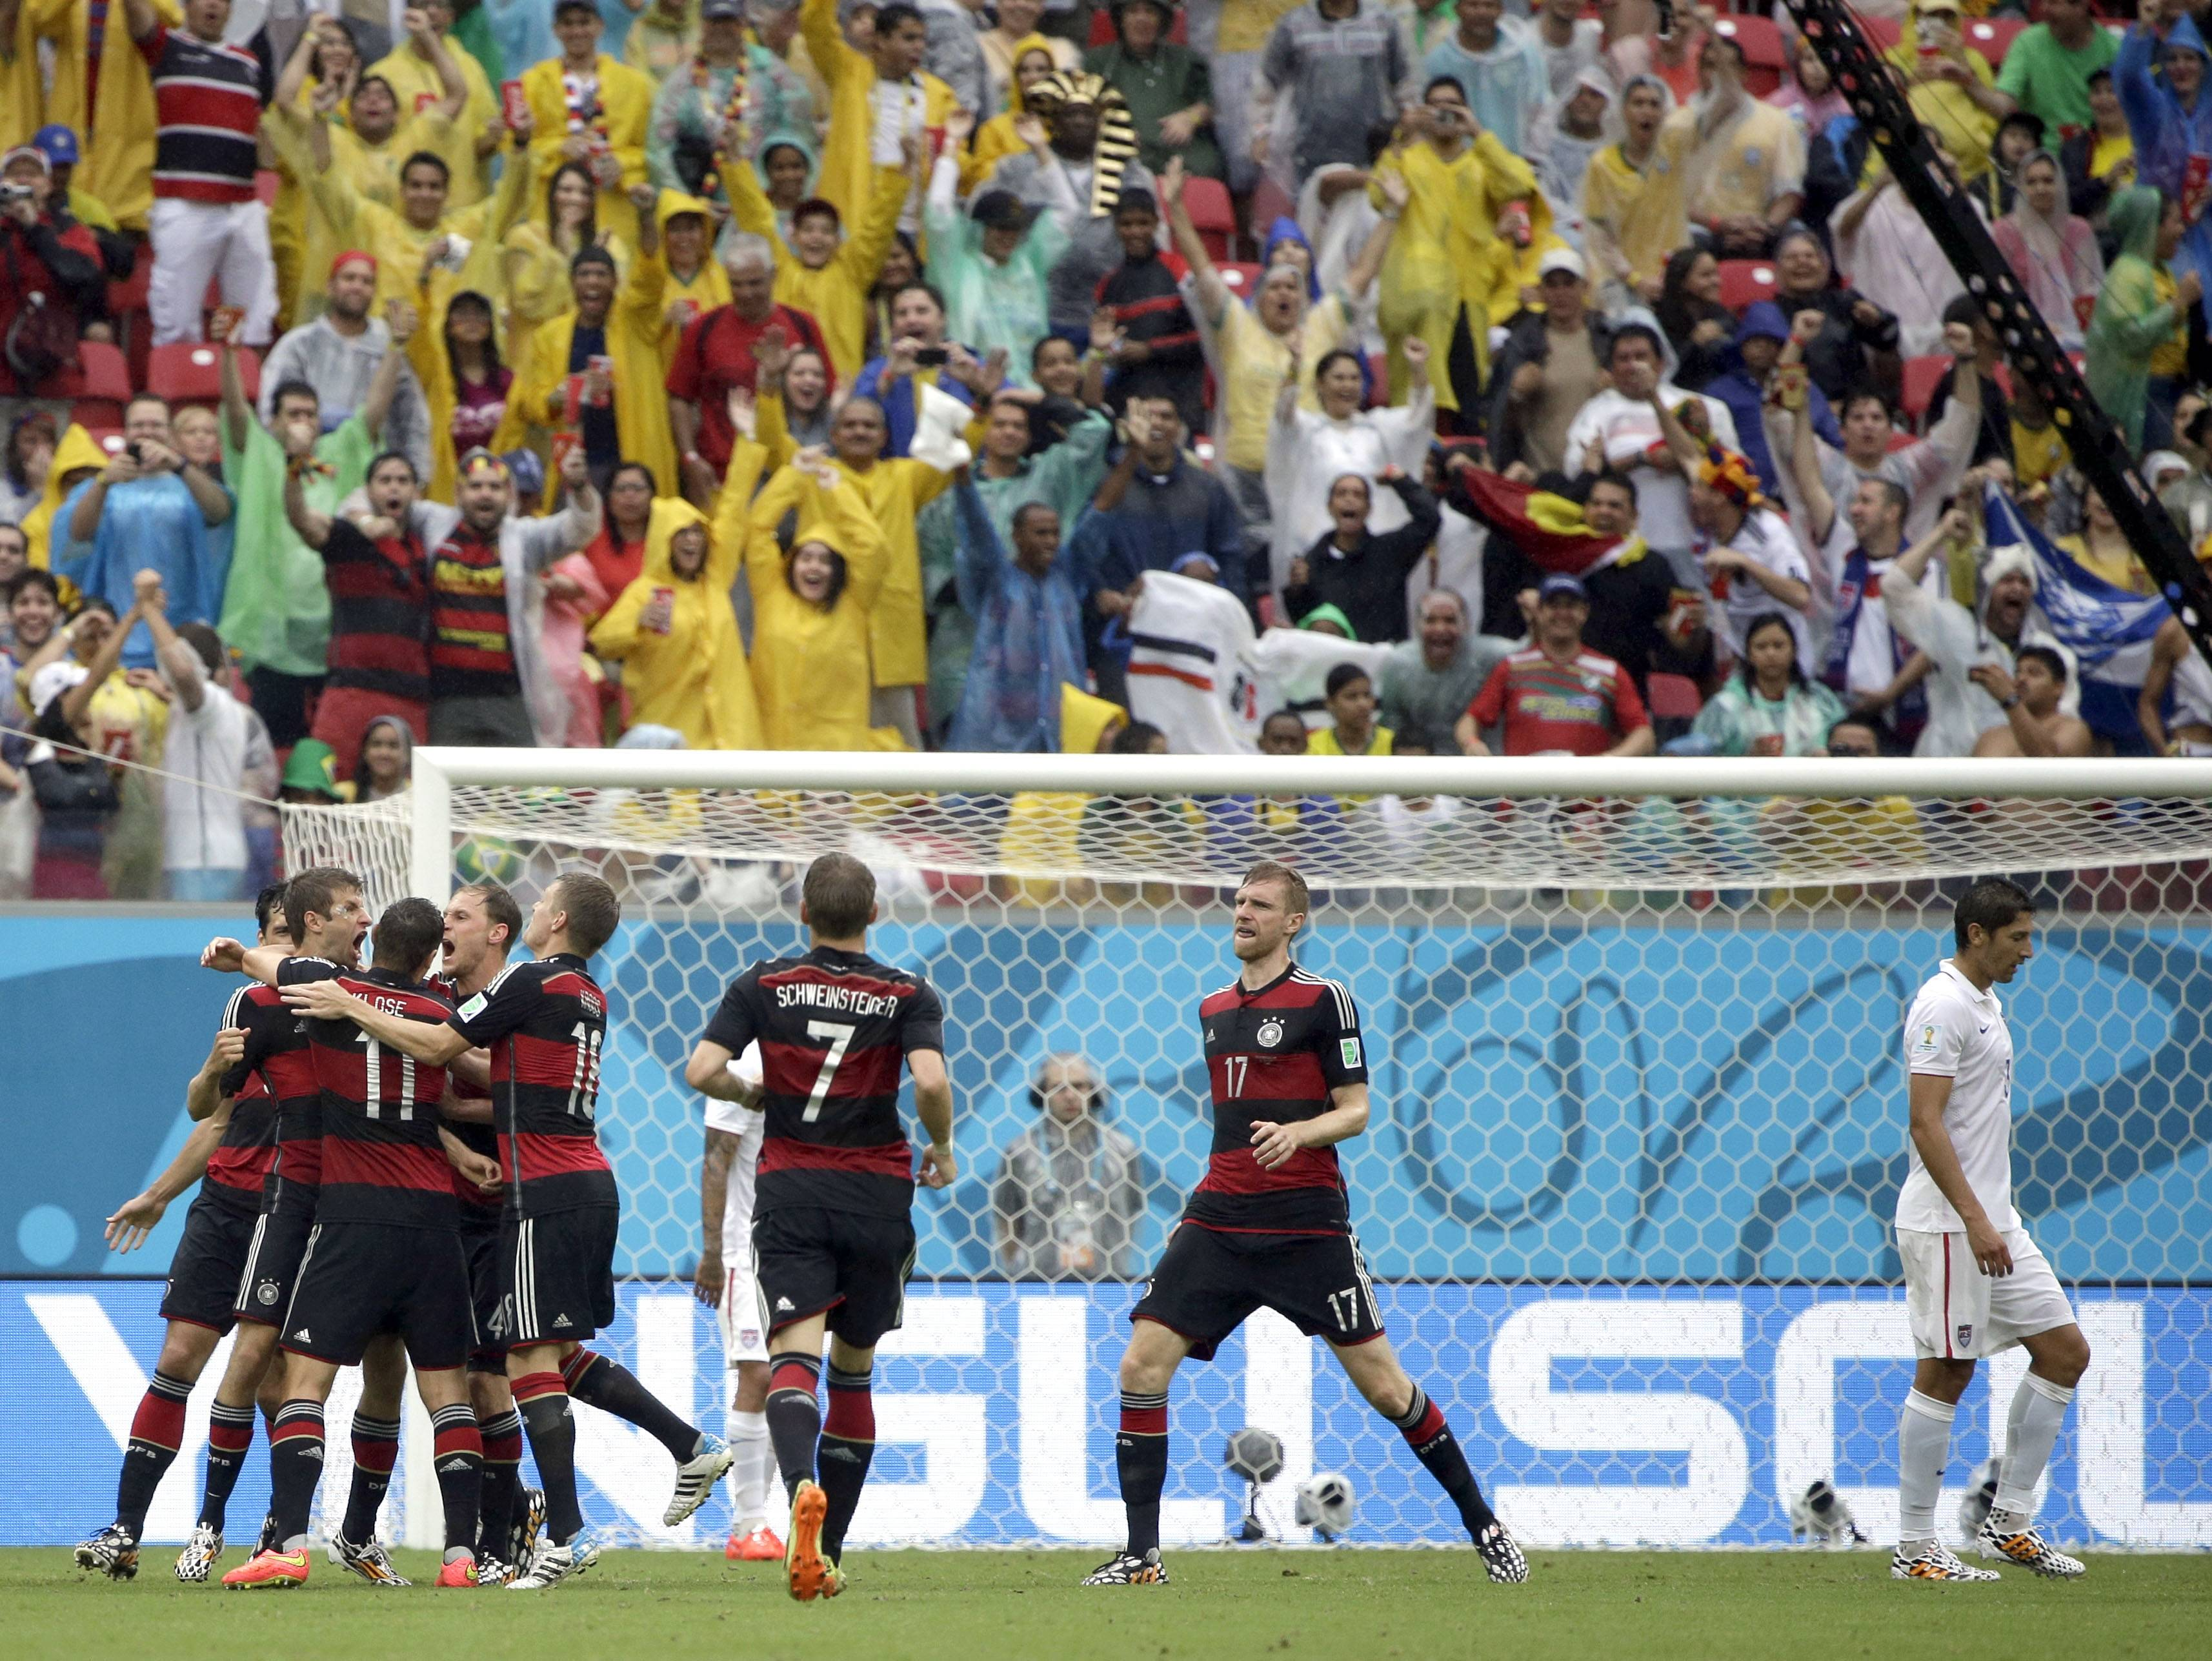 Germany's Thomas Mueller, left, celebrates with his teammates after scoring his side's first goal during the group G World Cup soccer match between the United States and Germany at the Arena Pernambuco in Recife, Brazil, Thursday, June 26, 2014.